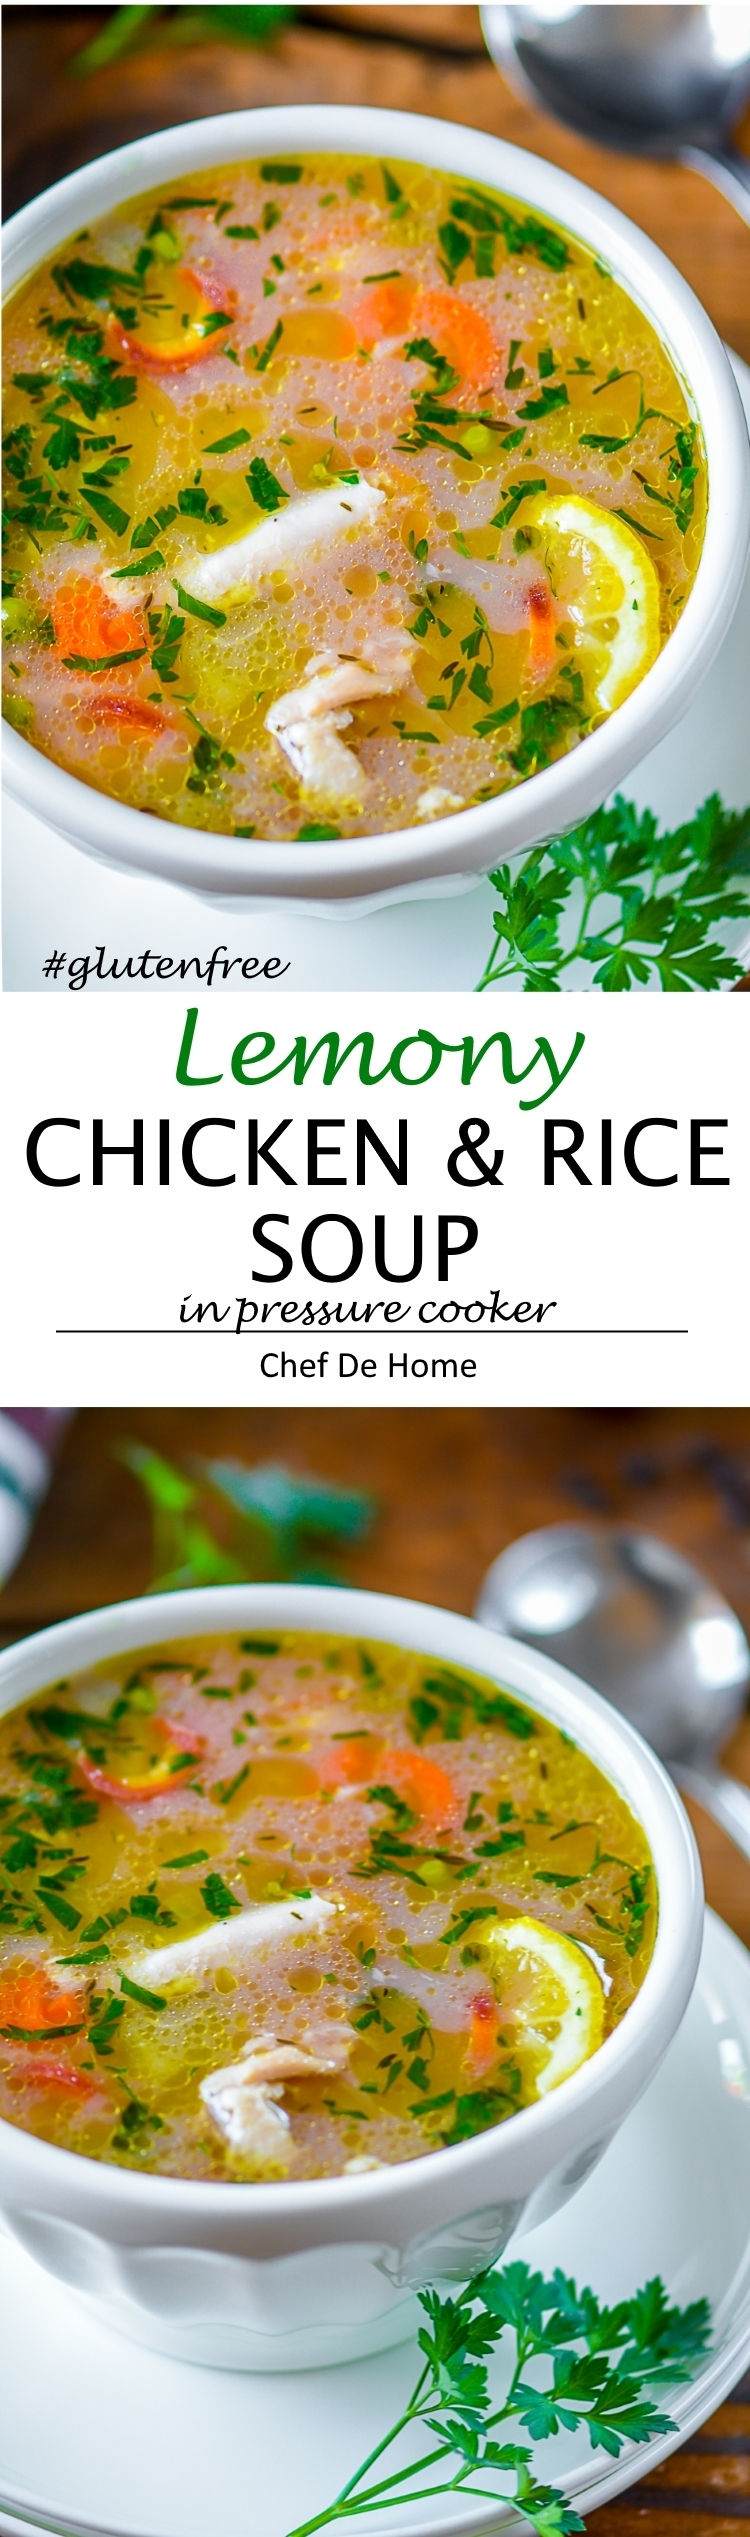 Made from scratch Lemony Chicken and Rice Soup | chefdehome.com